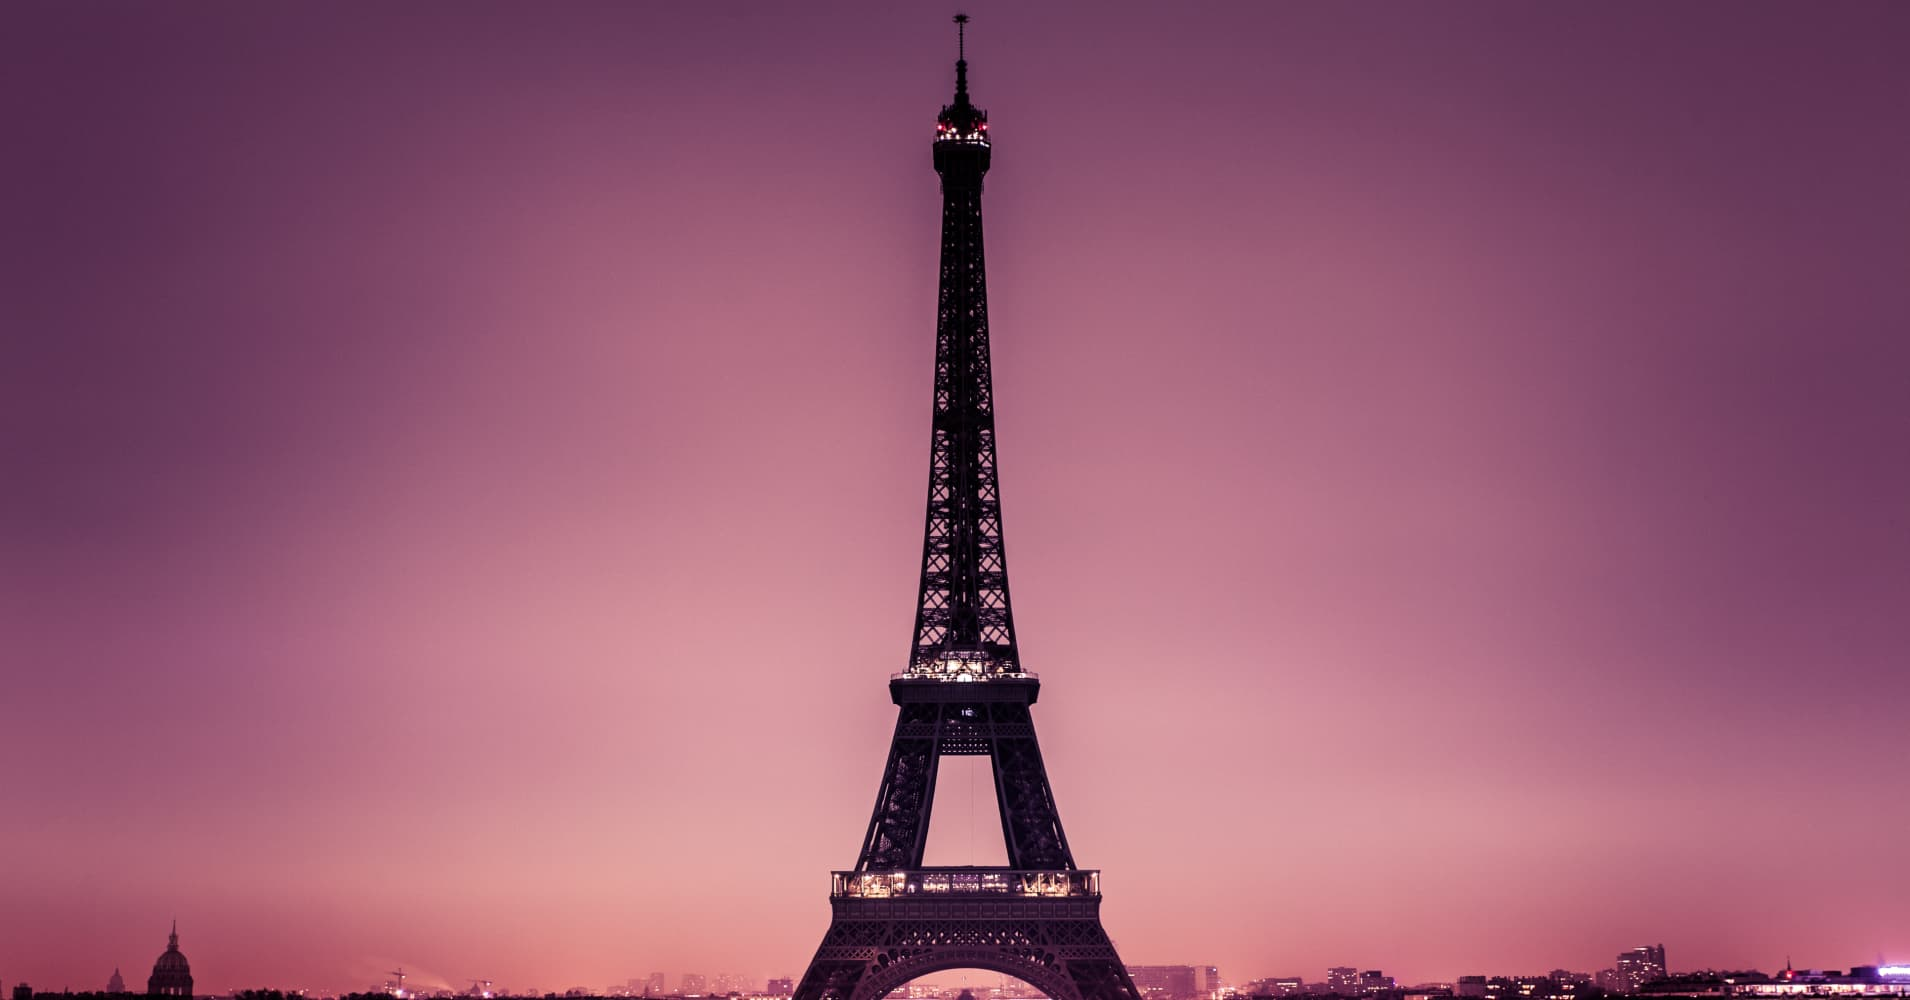 My dream is to go to Paris, France